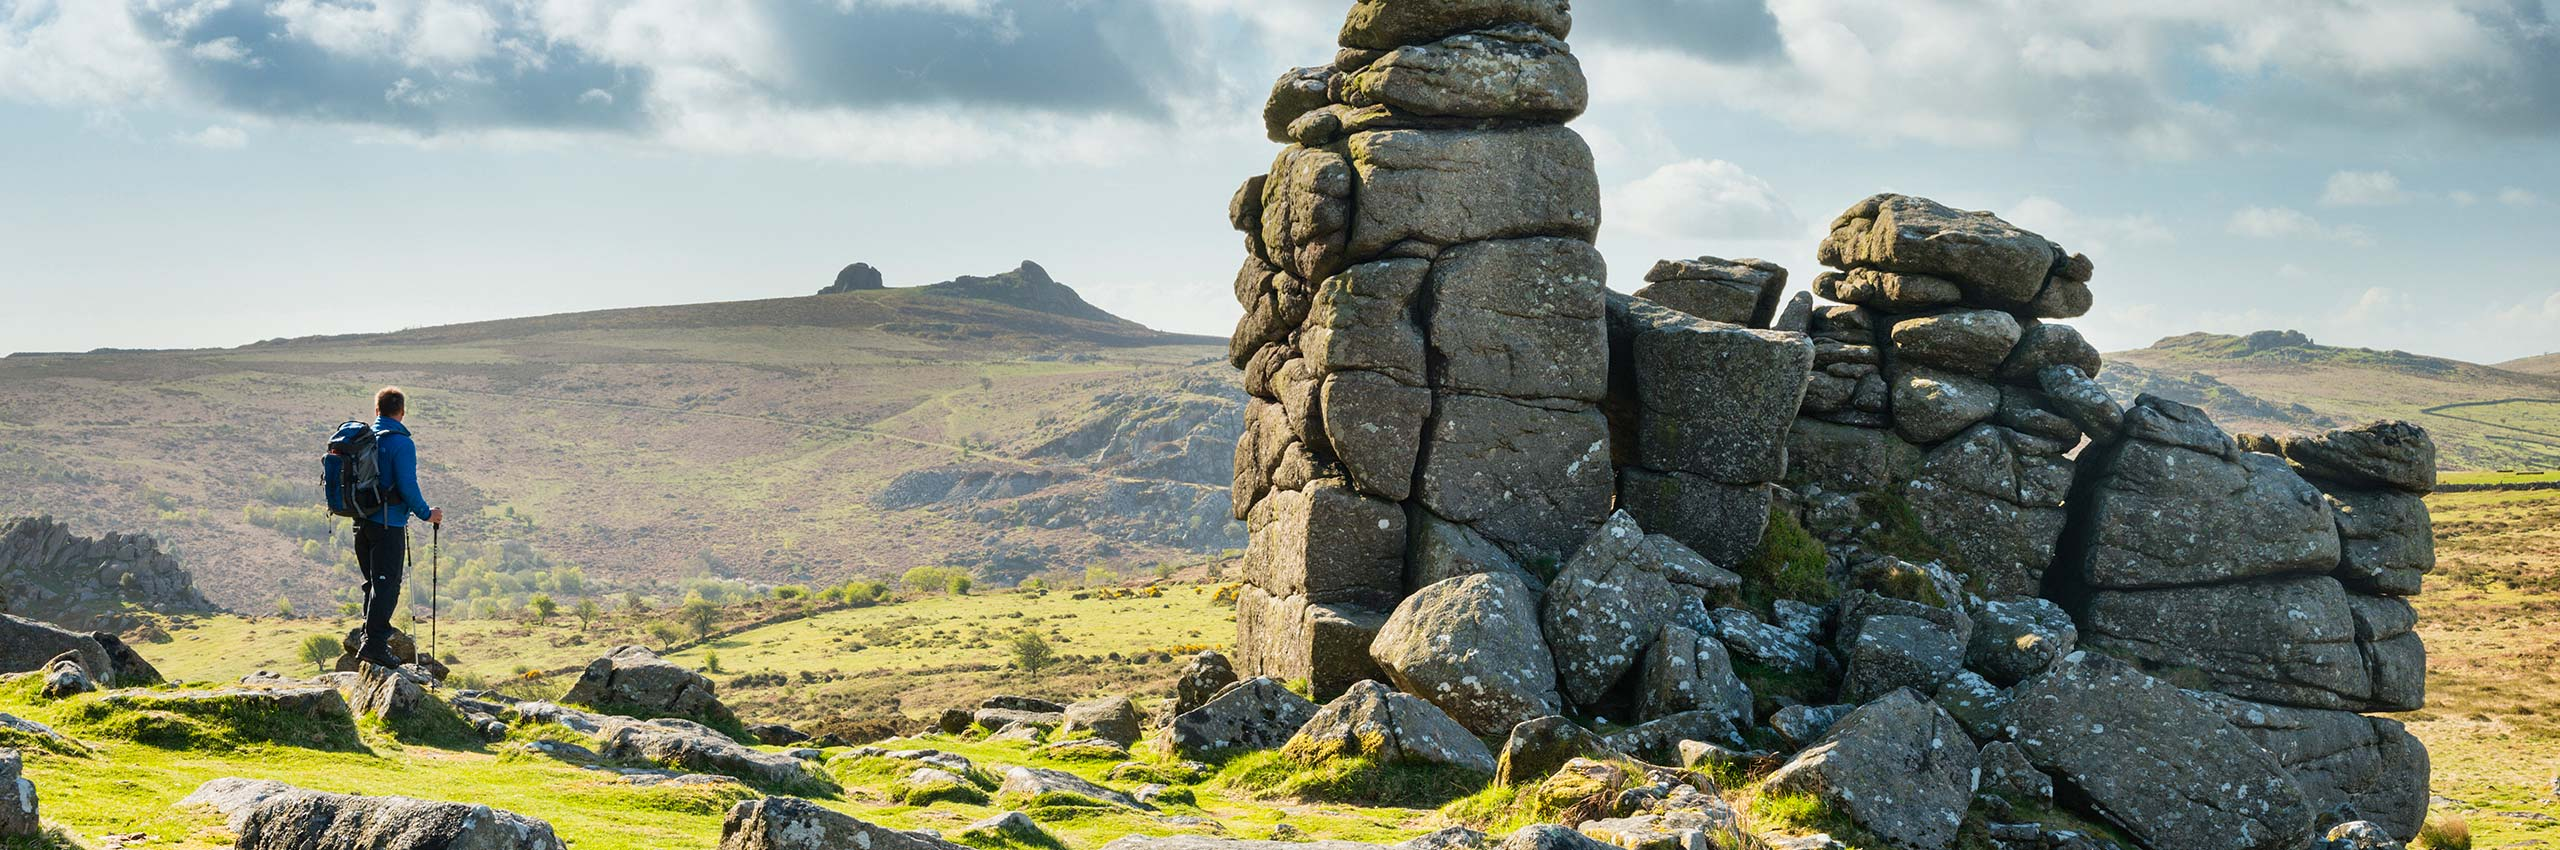 FCR-470045 | UK/England, Dartmoor National Park | © Justin Foulkes/4Corners